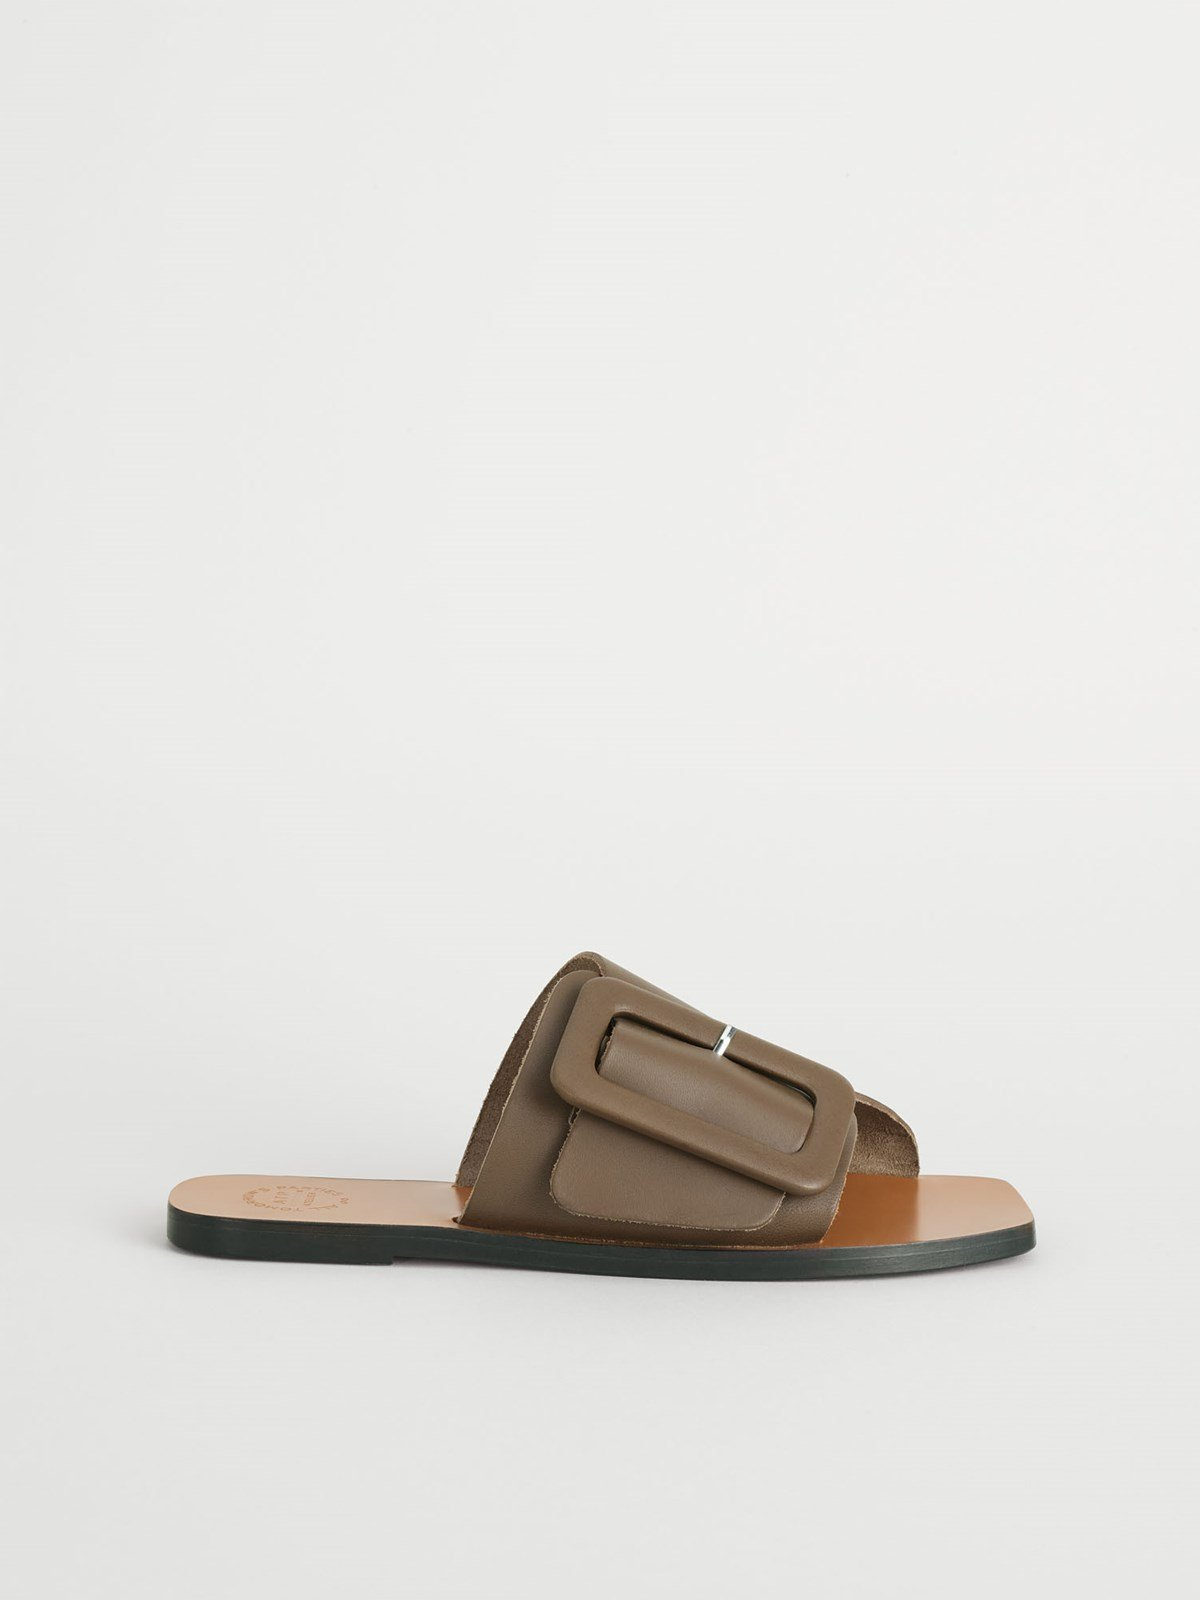 Ceci Khaki Brown Flat sandals